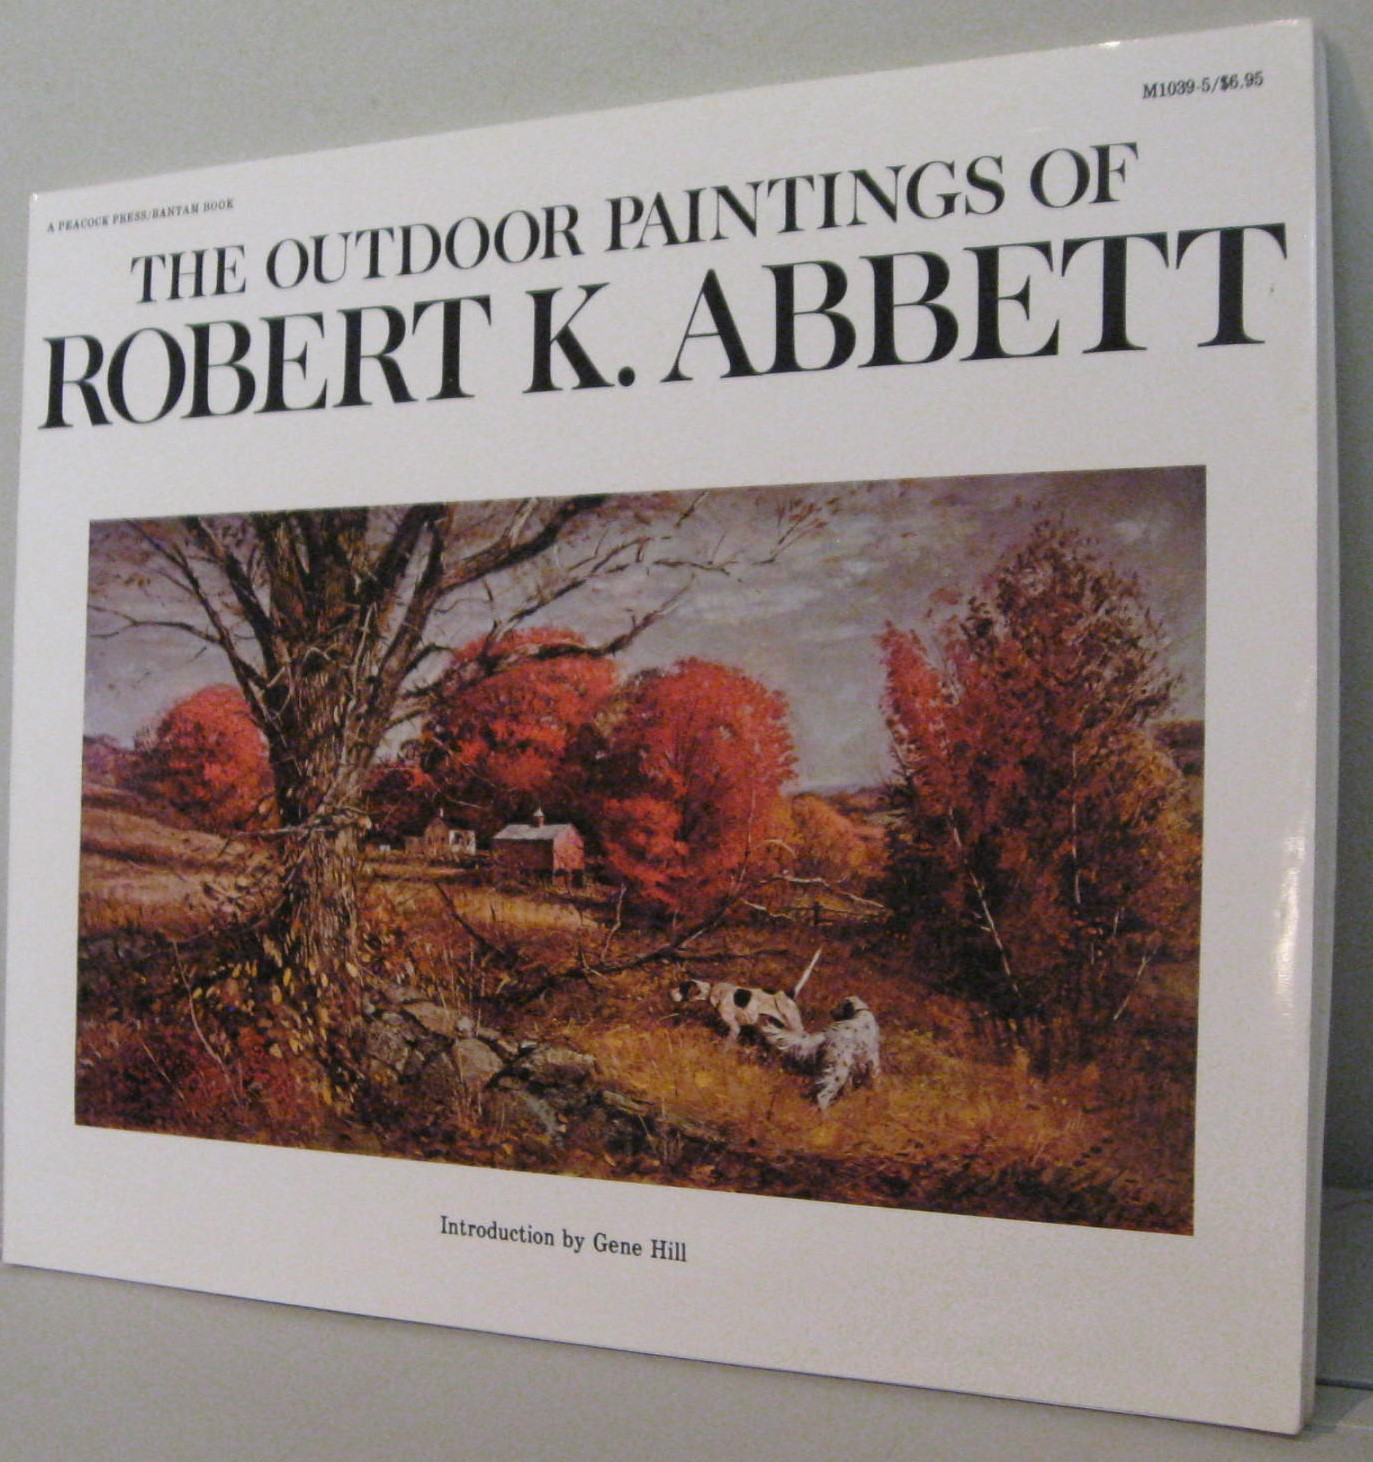 Image for THE OUTDOOR PAINTINGS OF ROBERT K. ABBETT,